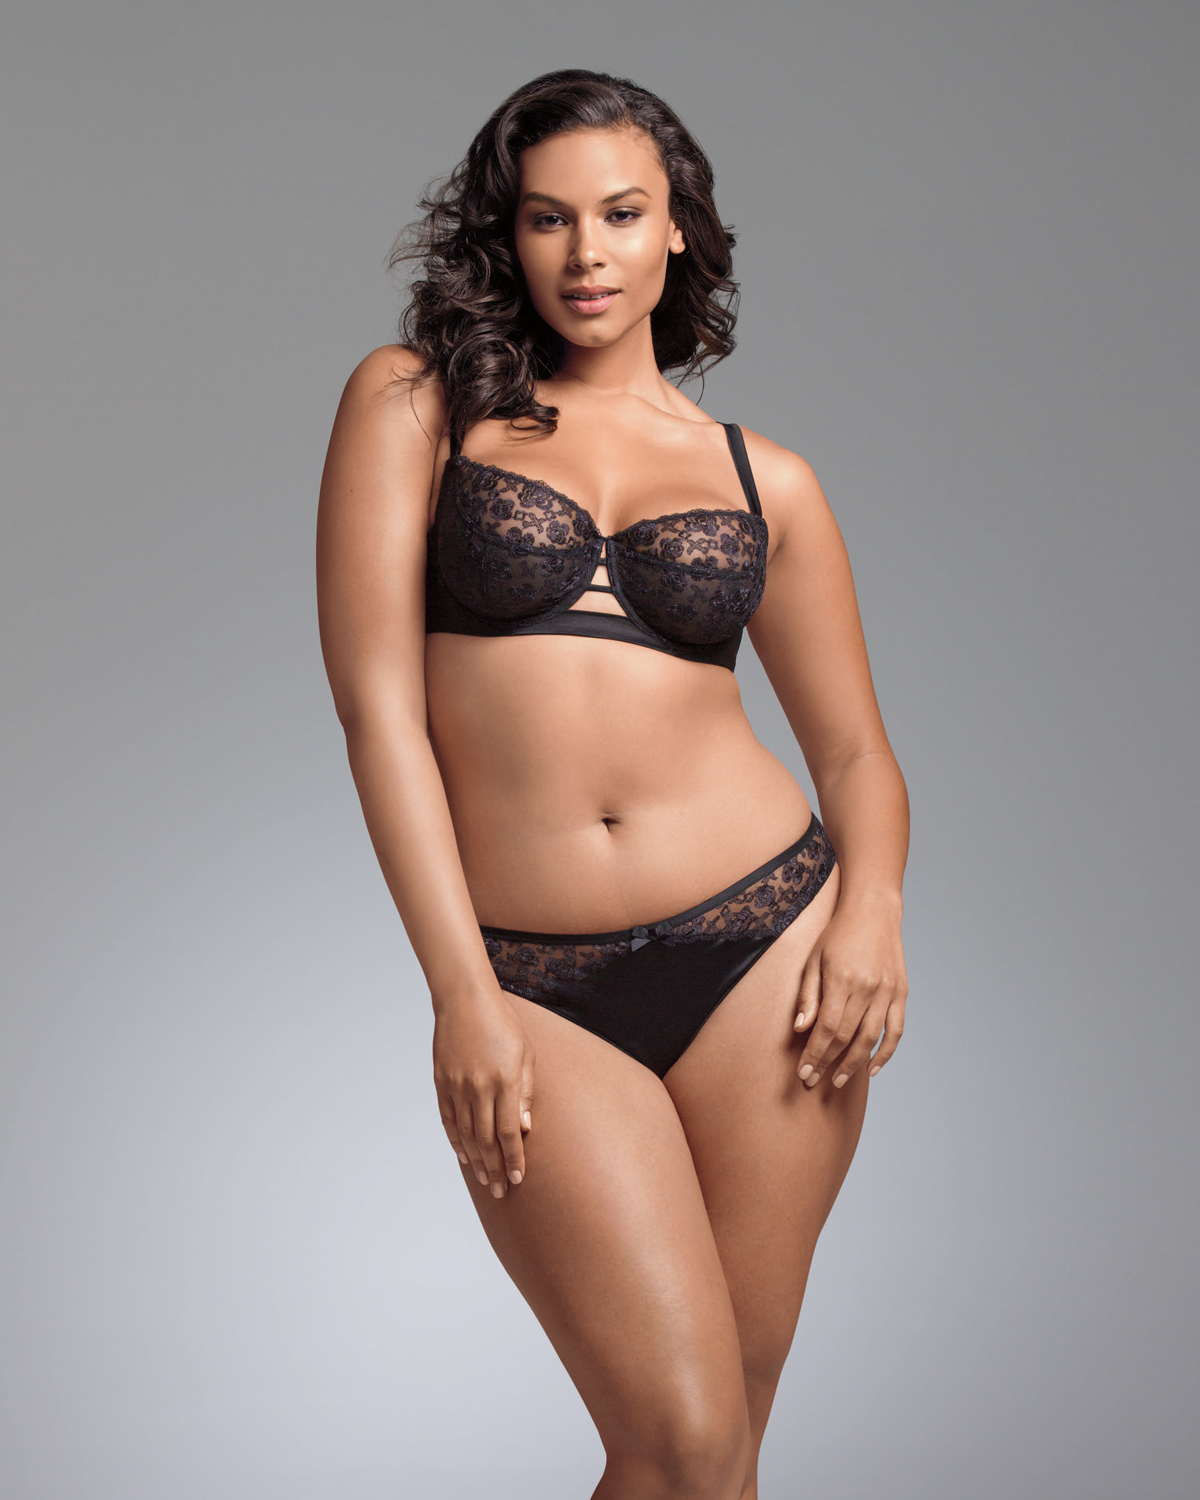 Shop Soma Intimates' perfectly fitting women's intimate clothing, including bras, Buy 3, Get 2 Free · Online Bra Fitting Guide · Love Soma Rewards · Shapewear Solutions1 Garden State Plaza, Space , Paramus · Directions · () ,+ followers on Twitter.